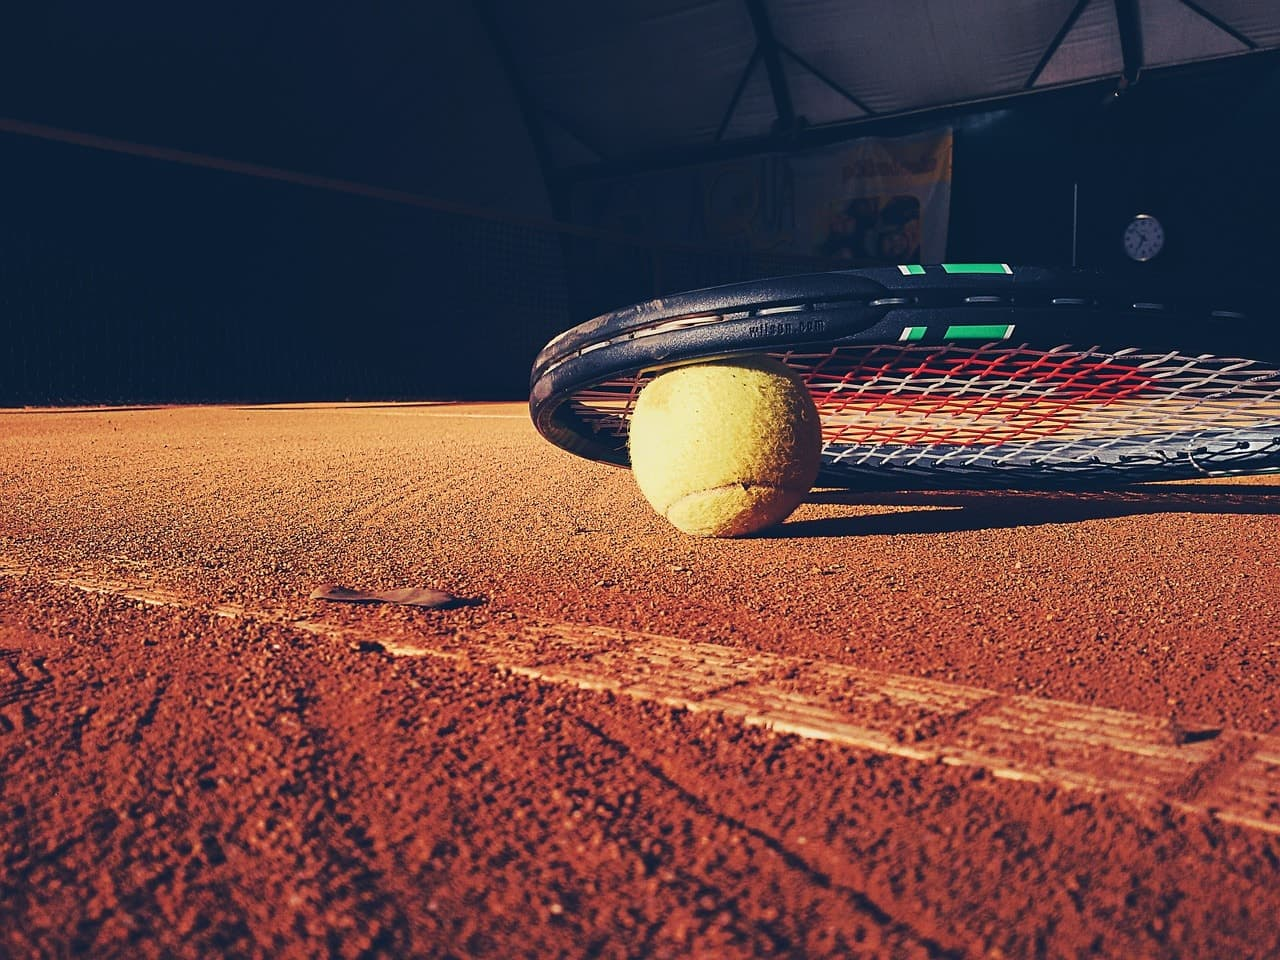 Tennis ball and racket resting on a clay court.